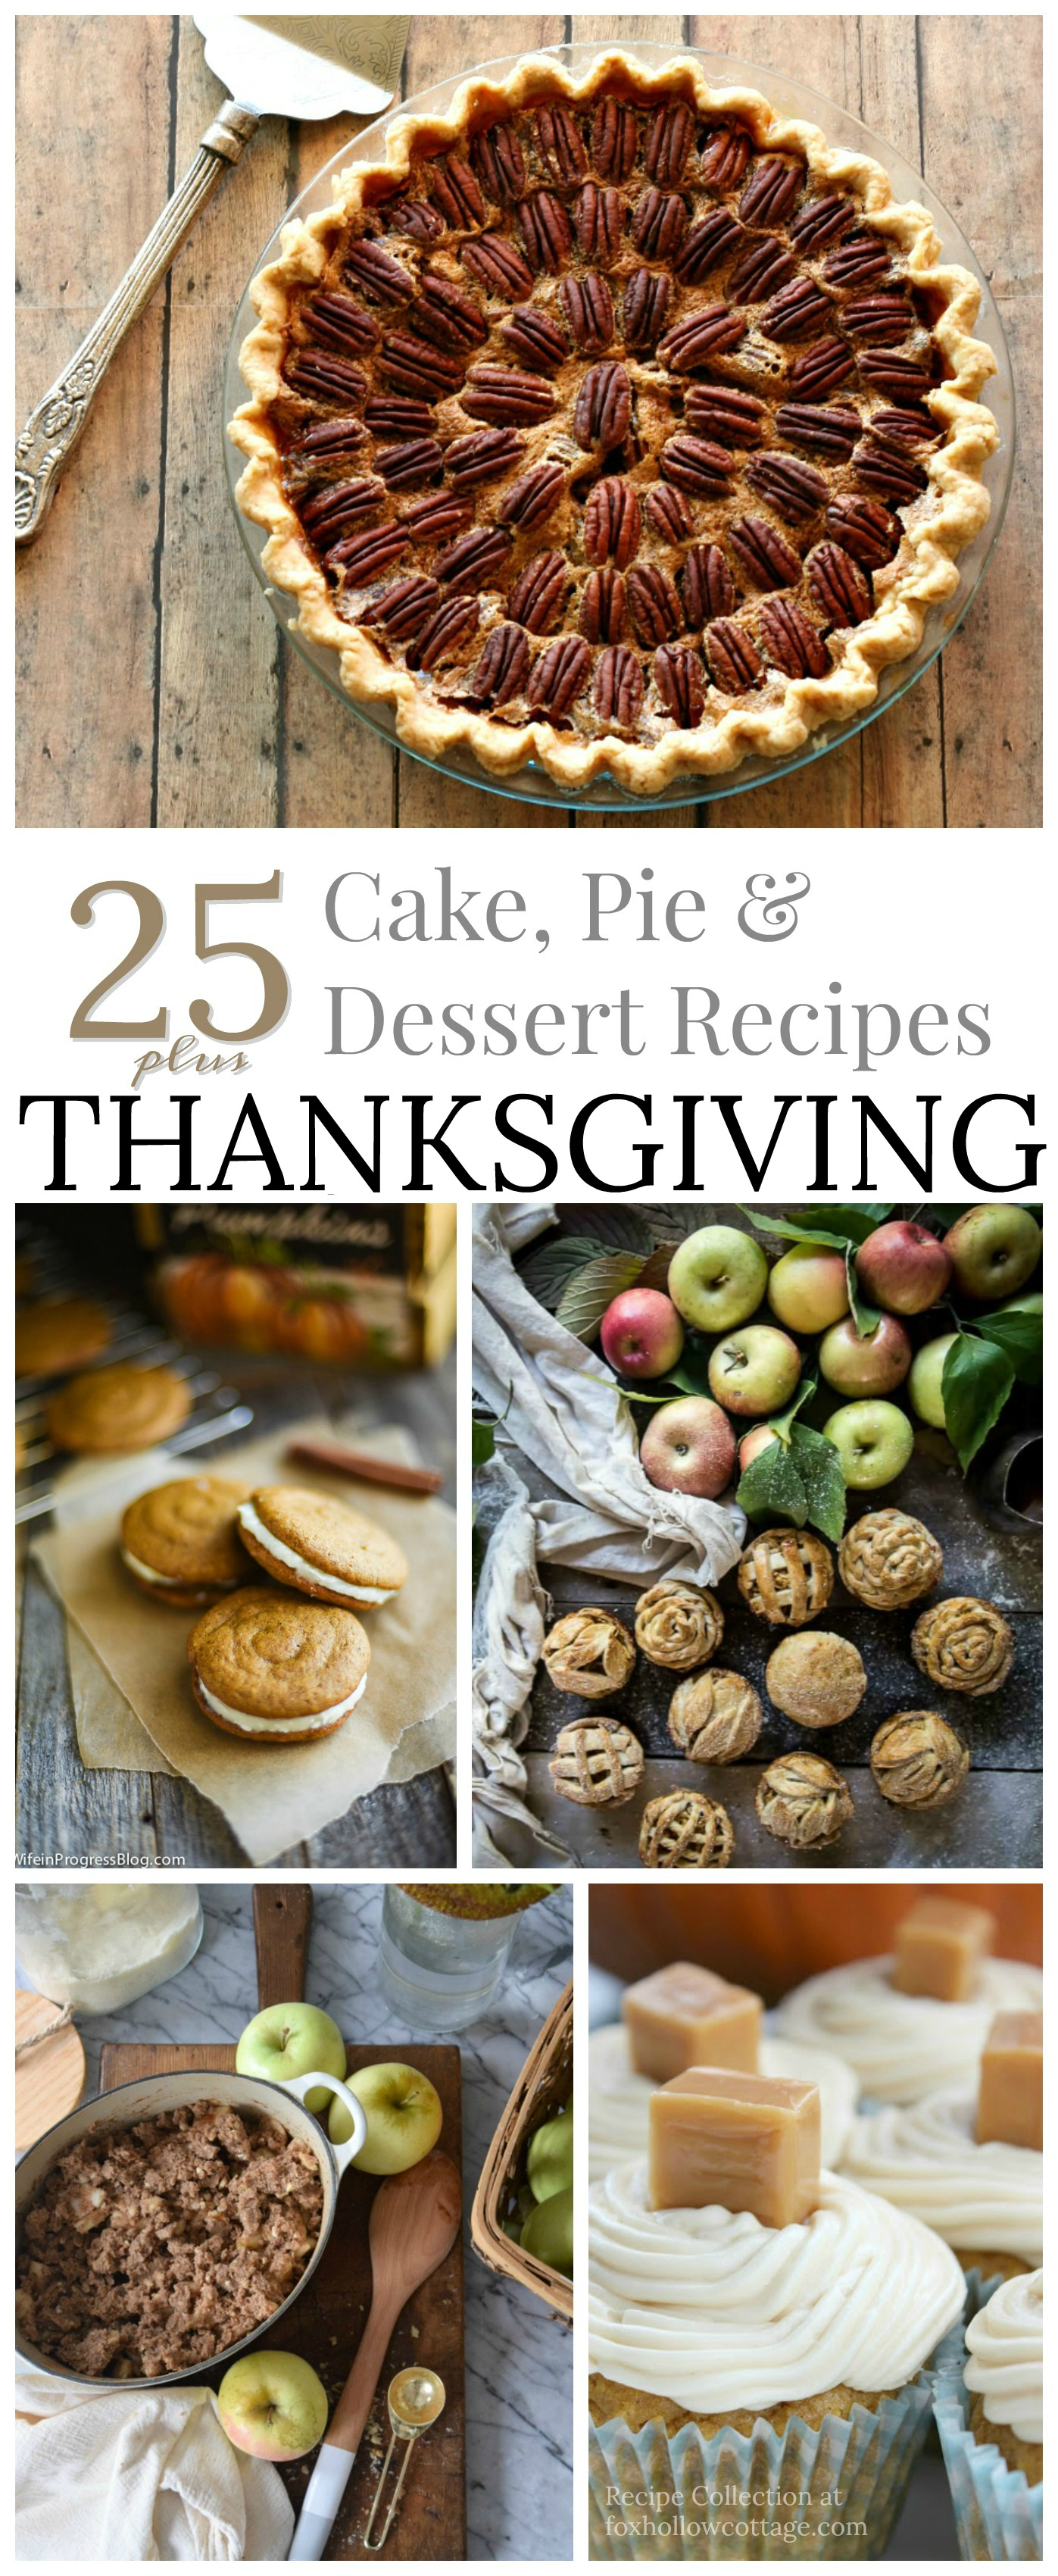 25-plus-Fall-Cake-Pie-Dessert-Recipe-Menu-Collection-Autumn-Thanksgiving